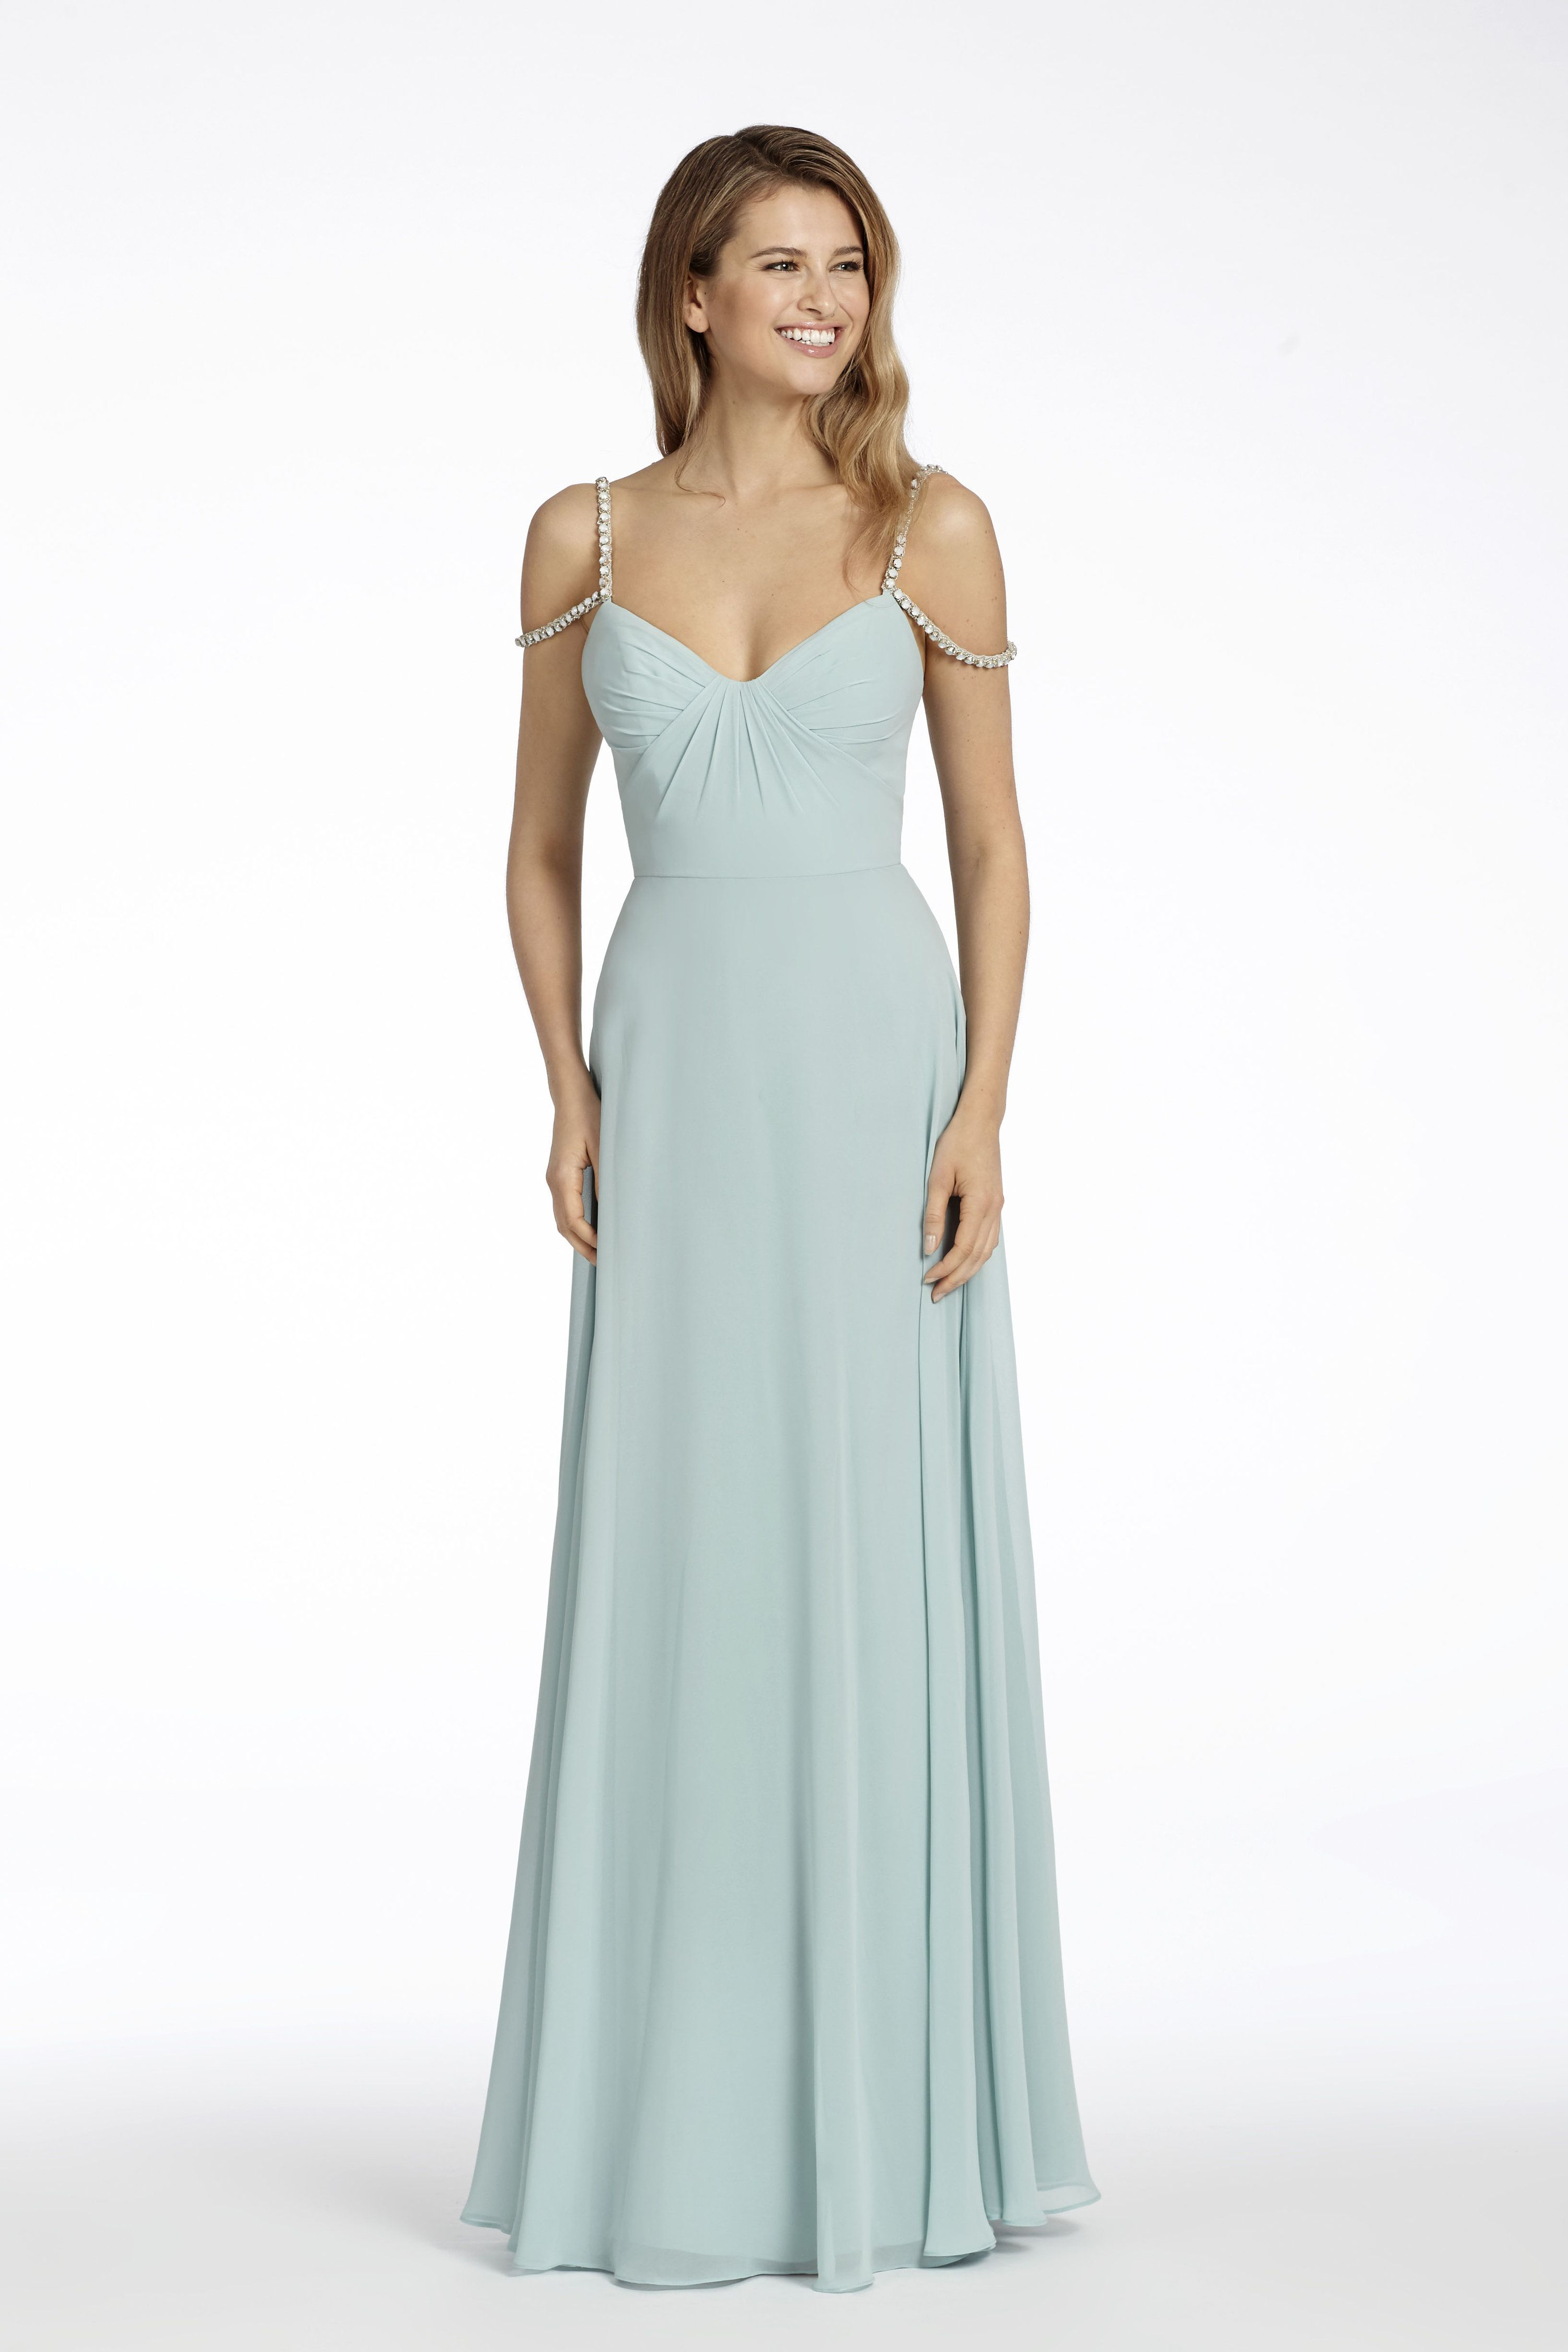 Hayley paige occasions style 5700 ice blue chiffon a line hayley paige occasions style 5700 ice blue chiffon a line bridesmaid gown scoop ombrellifo Choice Image